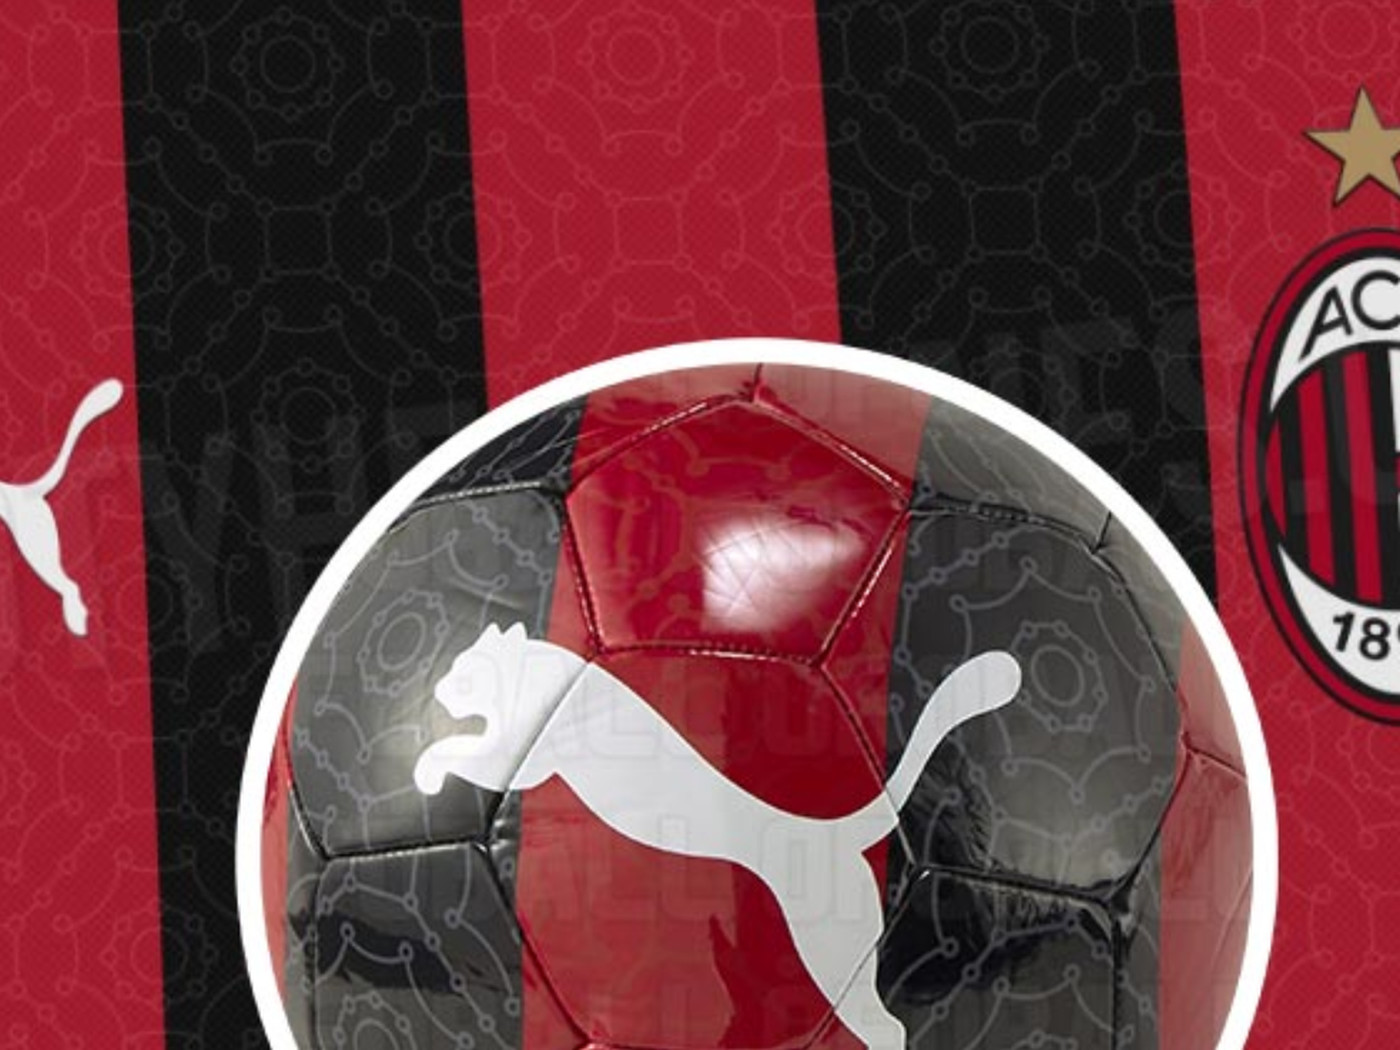 Leaked New Images For Ac Milan S 2020 21 Kits And Merchandise The Ac Milan Offside